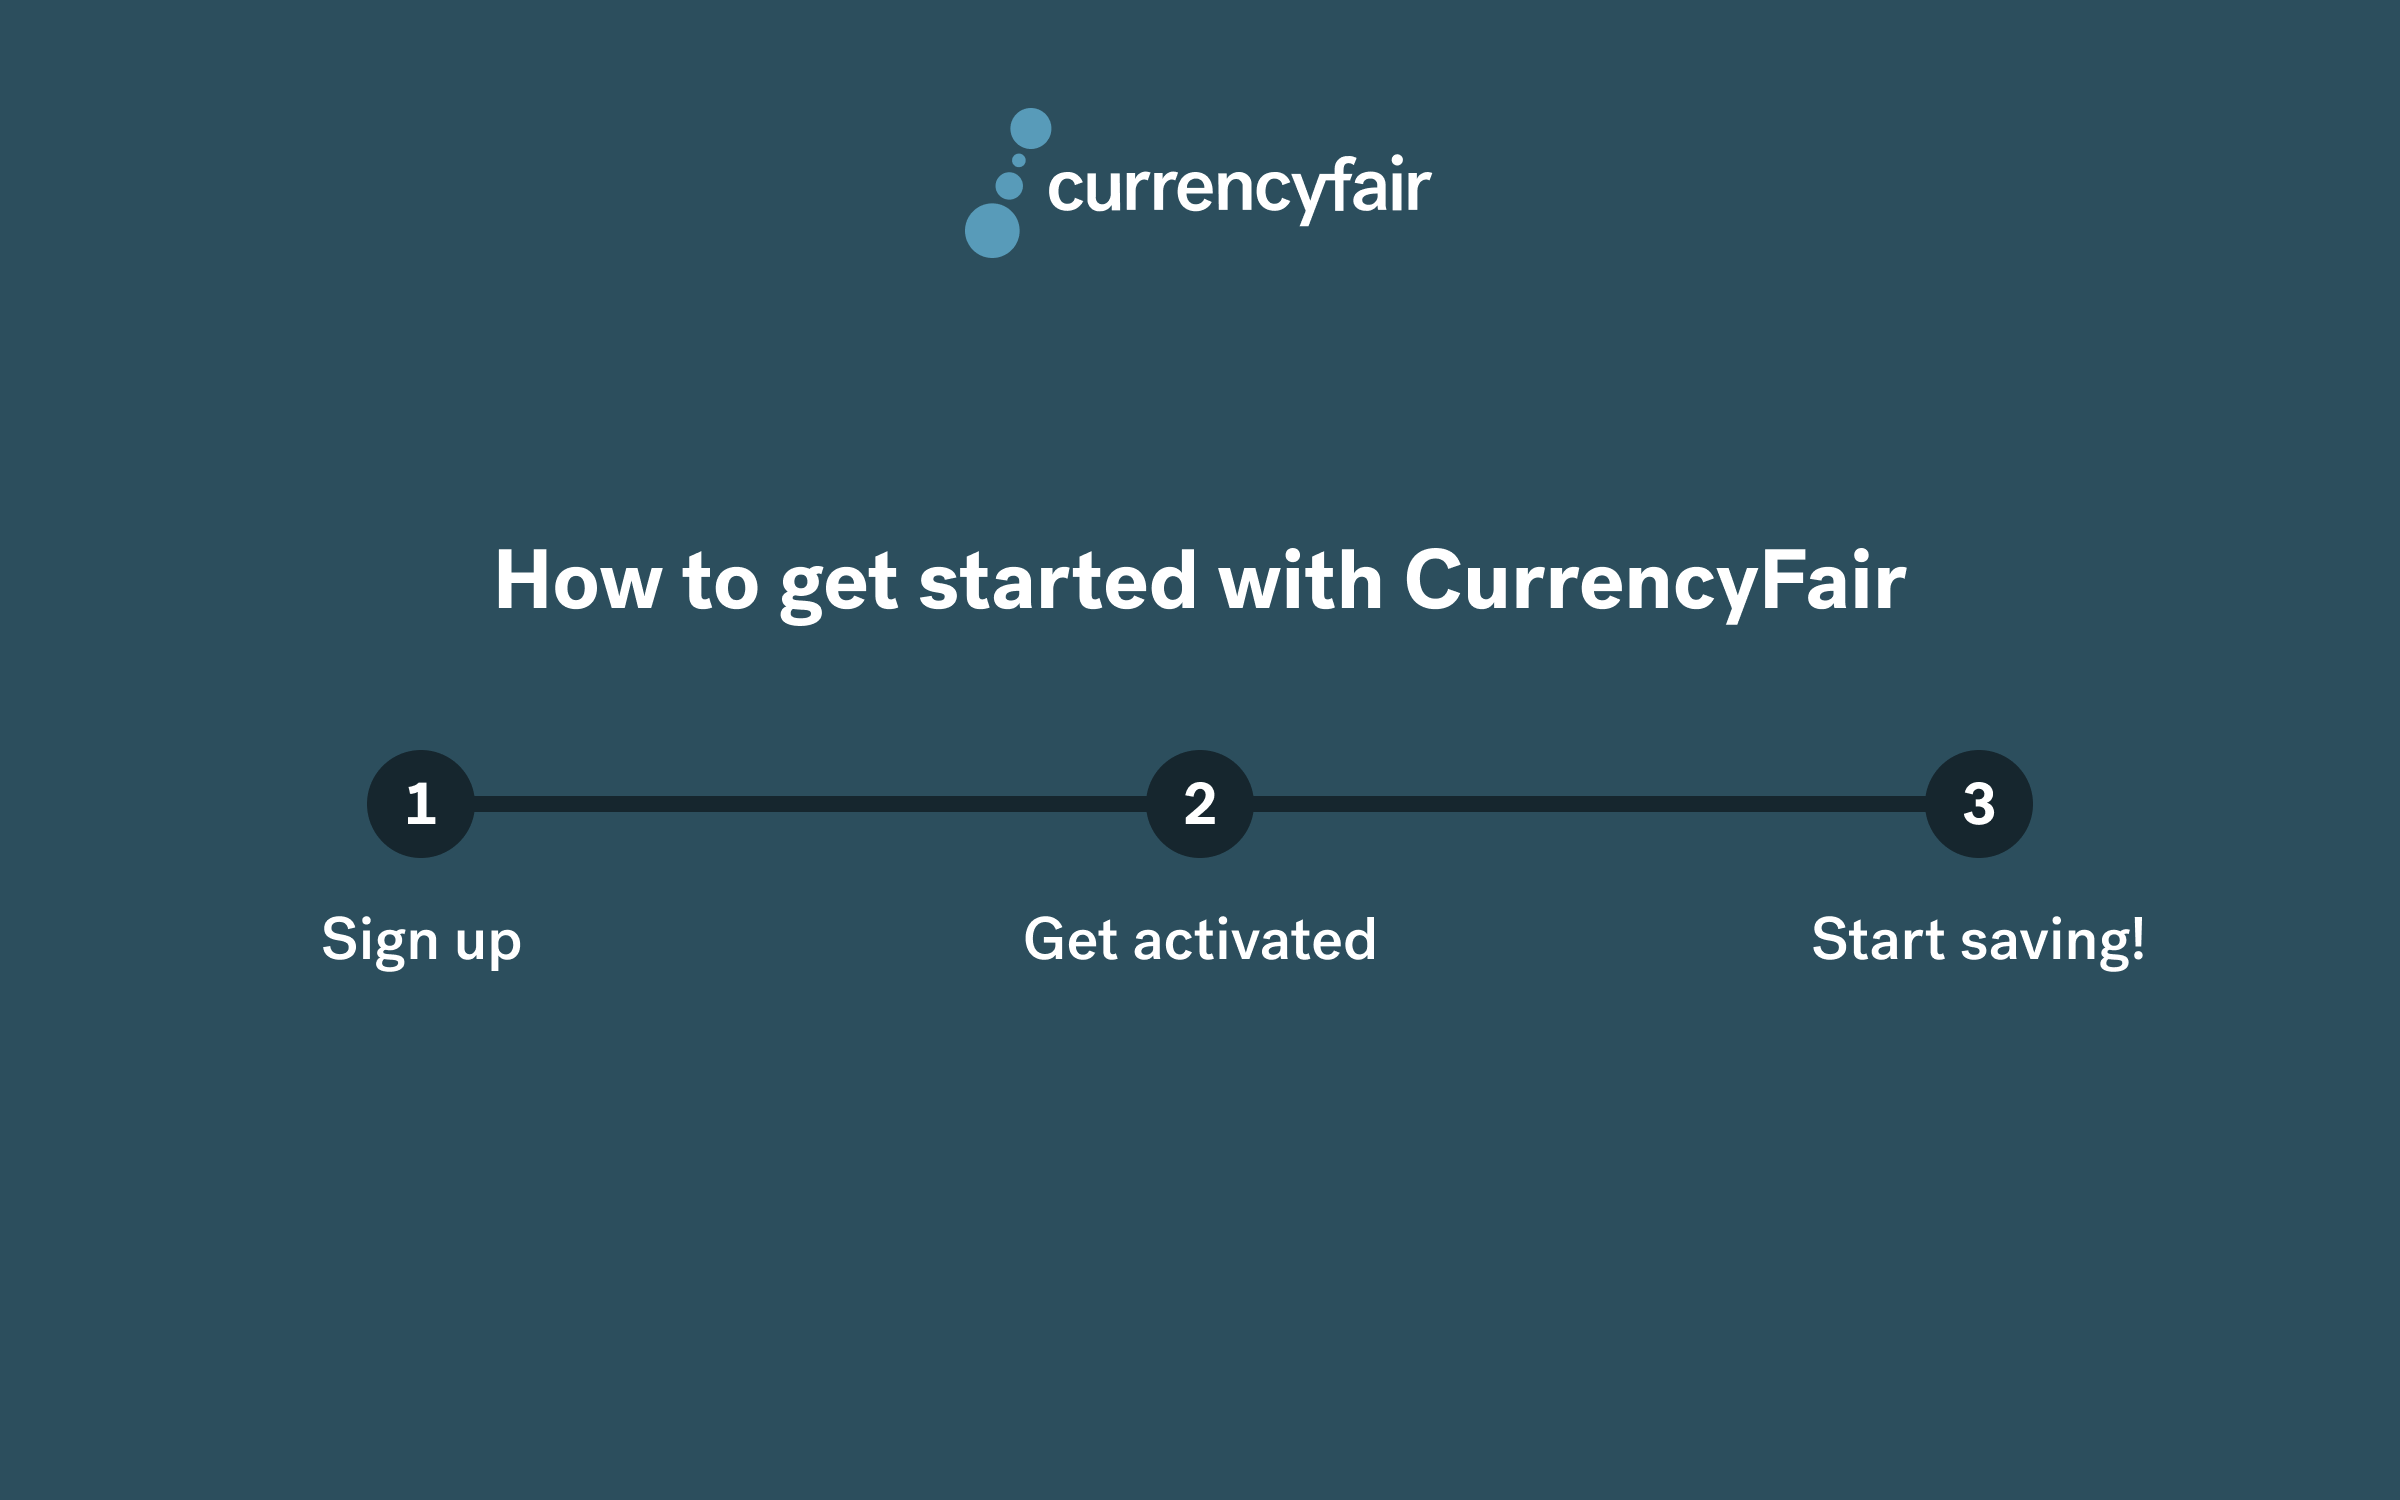 Guide to using a CurrencyFair personal account